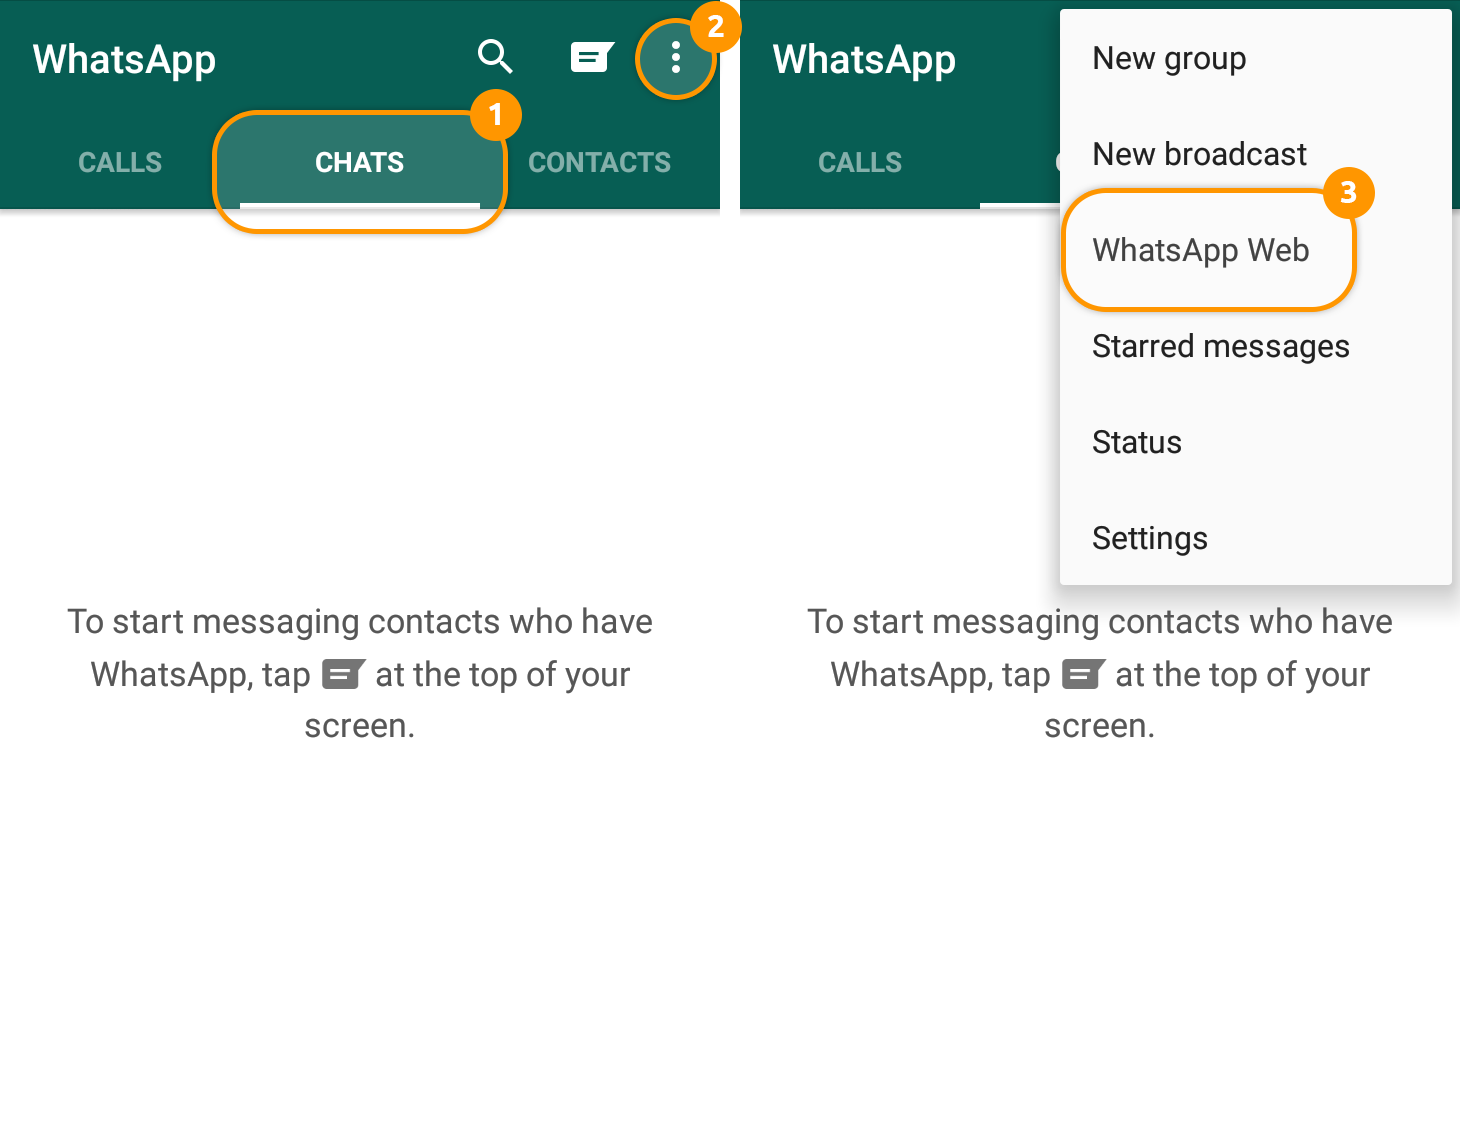 How to use Messengers: Start your WhatsApp App and open the